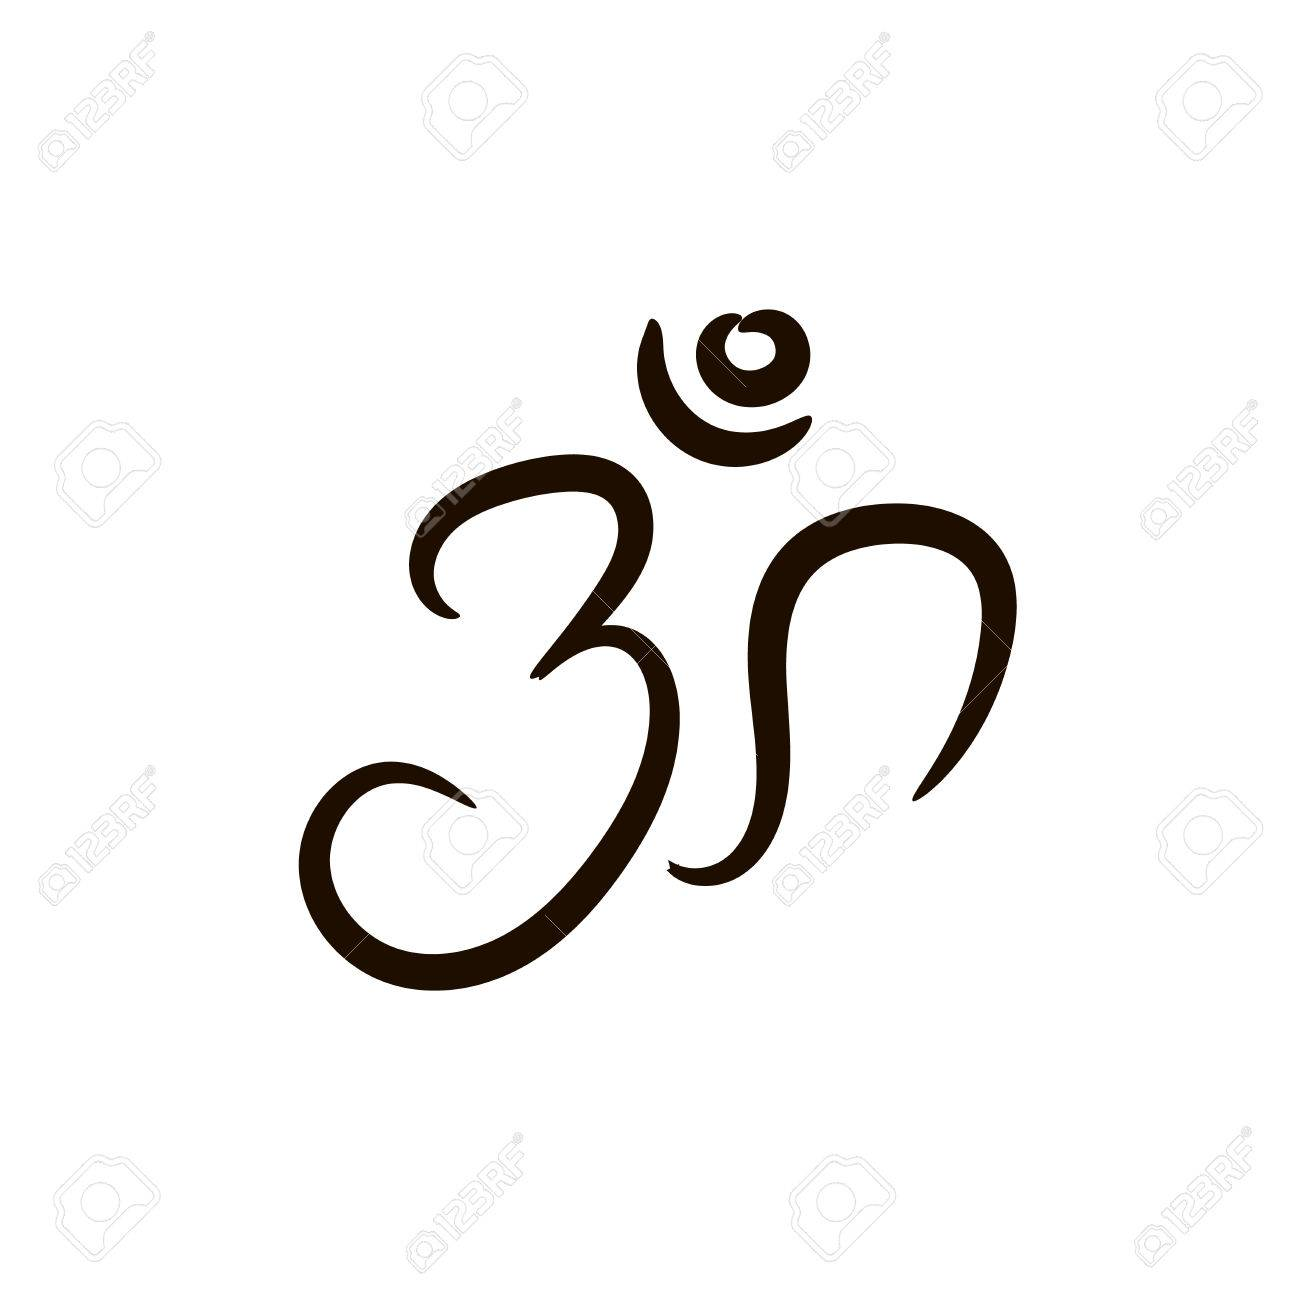 Hindu peace symbol images symbol and sign ideas sign vector hindu om icon in tamil royalty free cliparts vectors sign vector hindu om icon buycottarizona